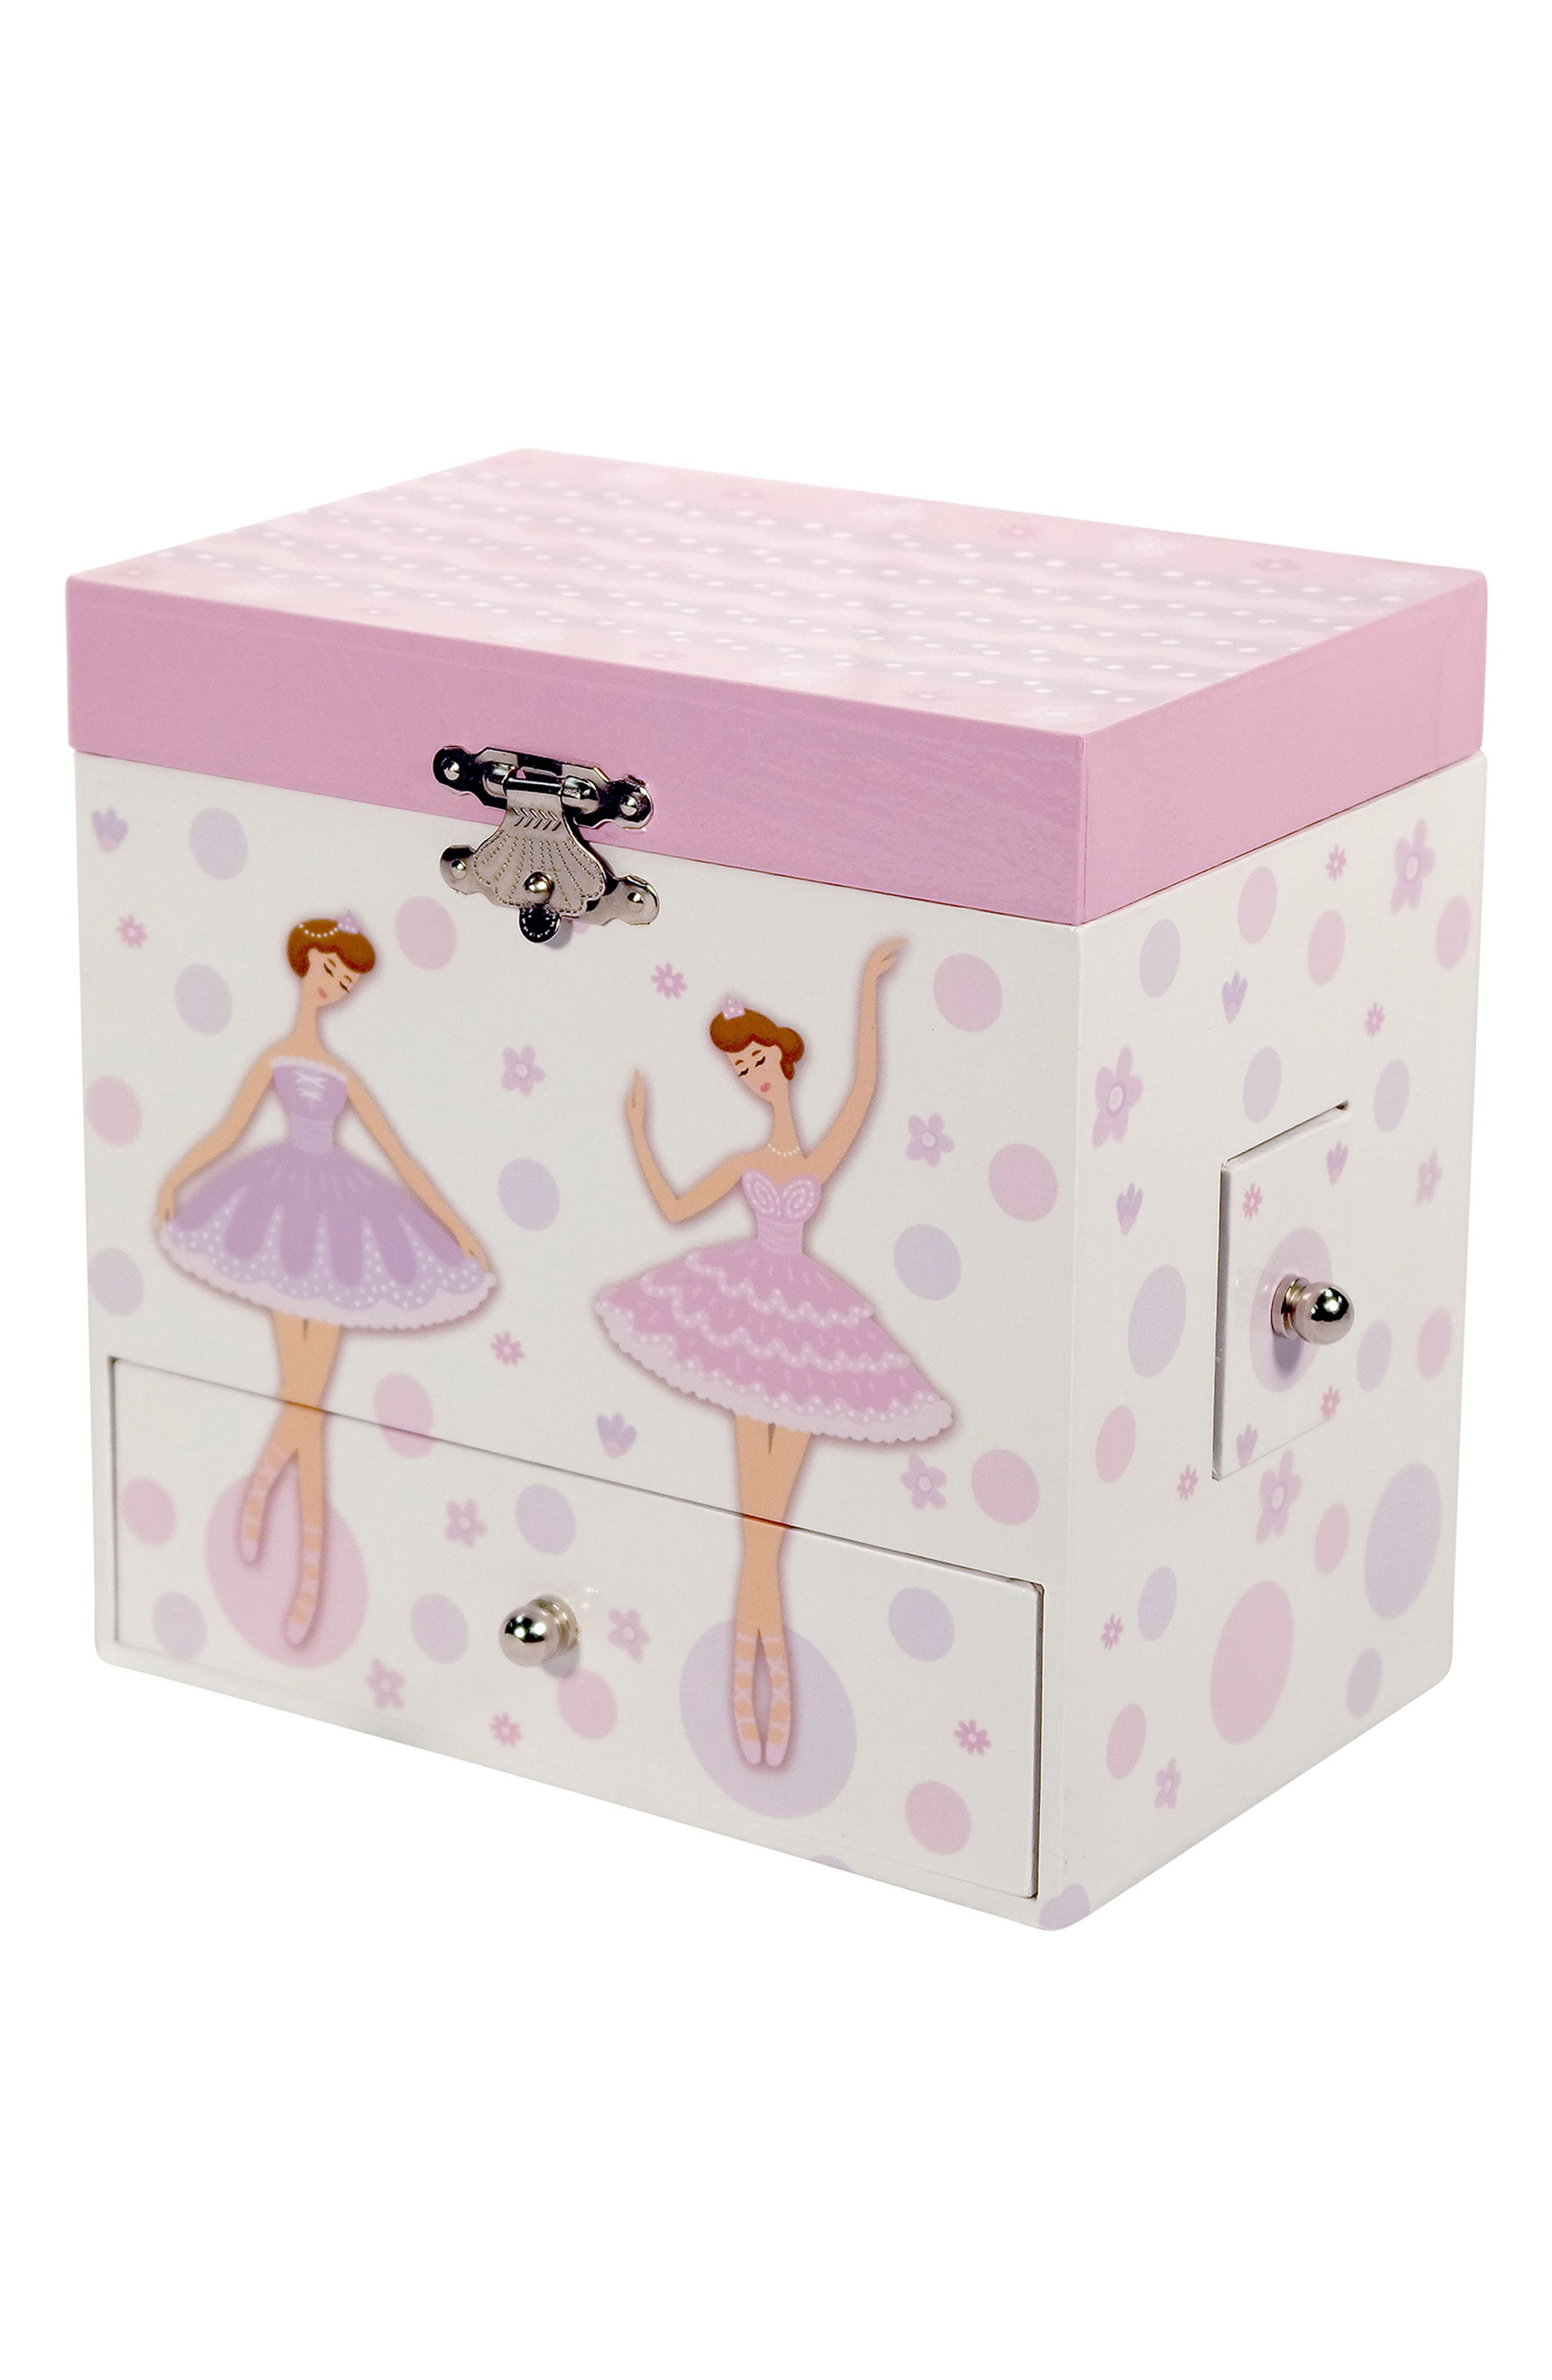 Alternate Image 1 Selected - Mele & Co. Jolie Musical Jewelry Box (Girls)